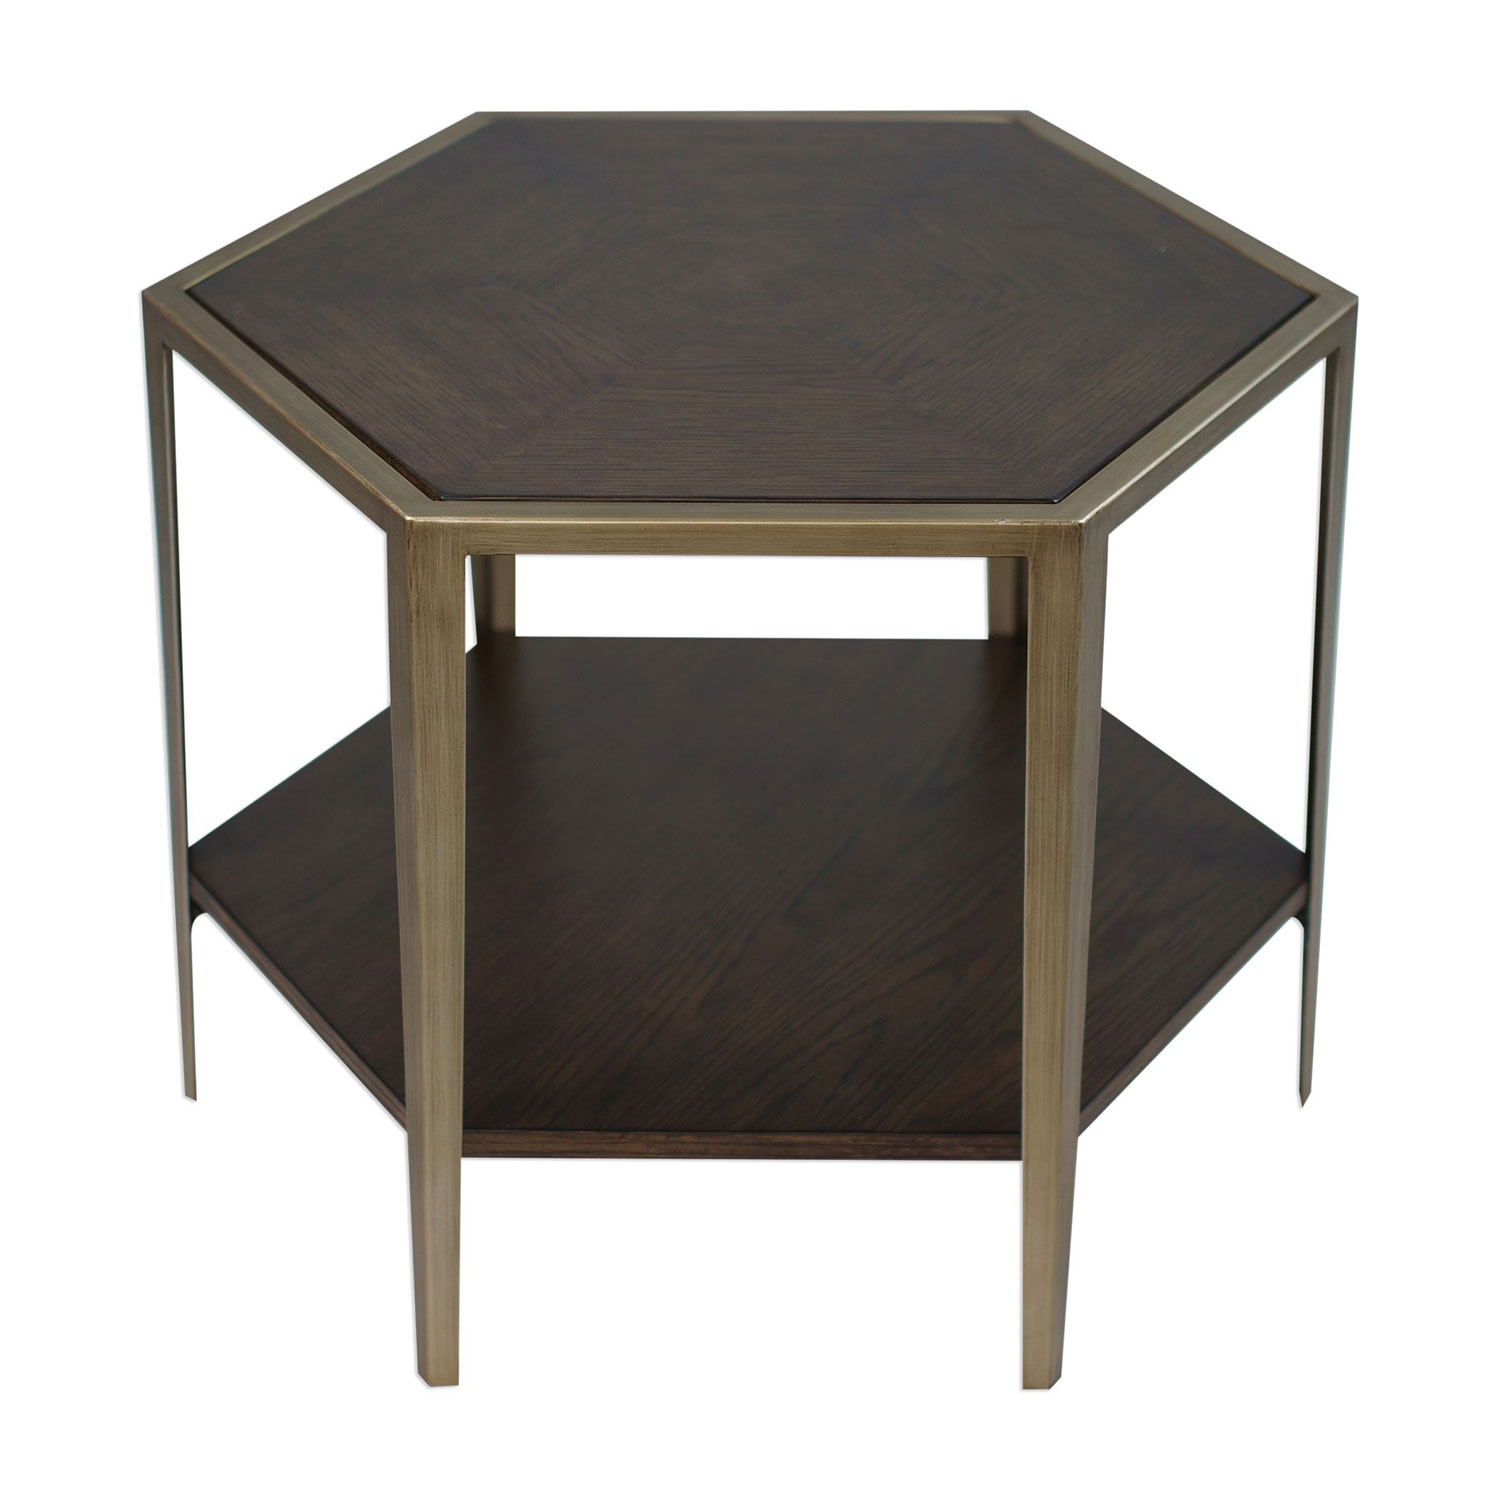 uttermost alicia geometric accent table bellacor blythe hover zoom small red end pier lighting slim round conference mission style plans garden drinks cooler one imports credit